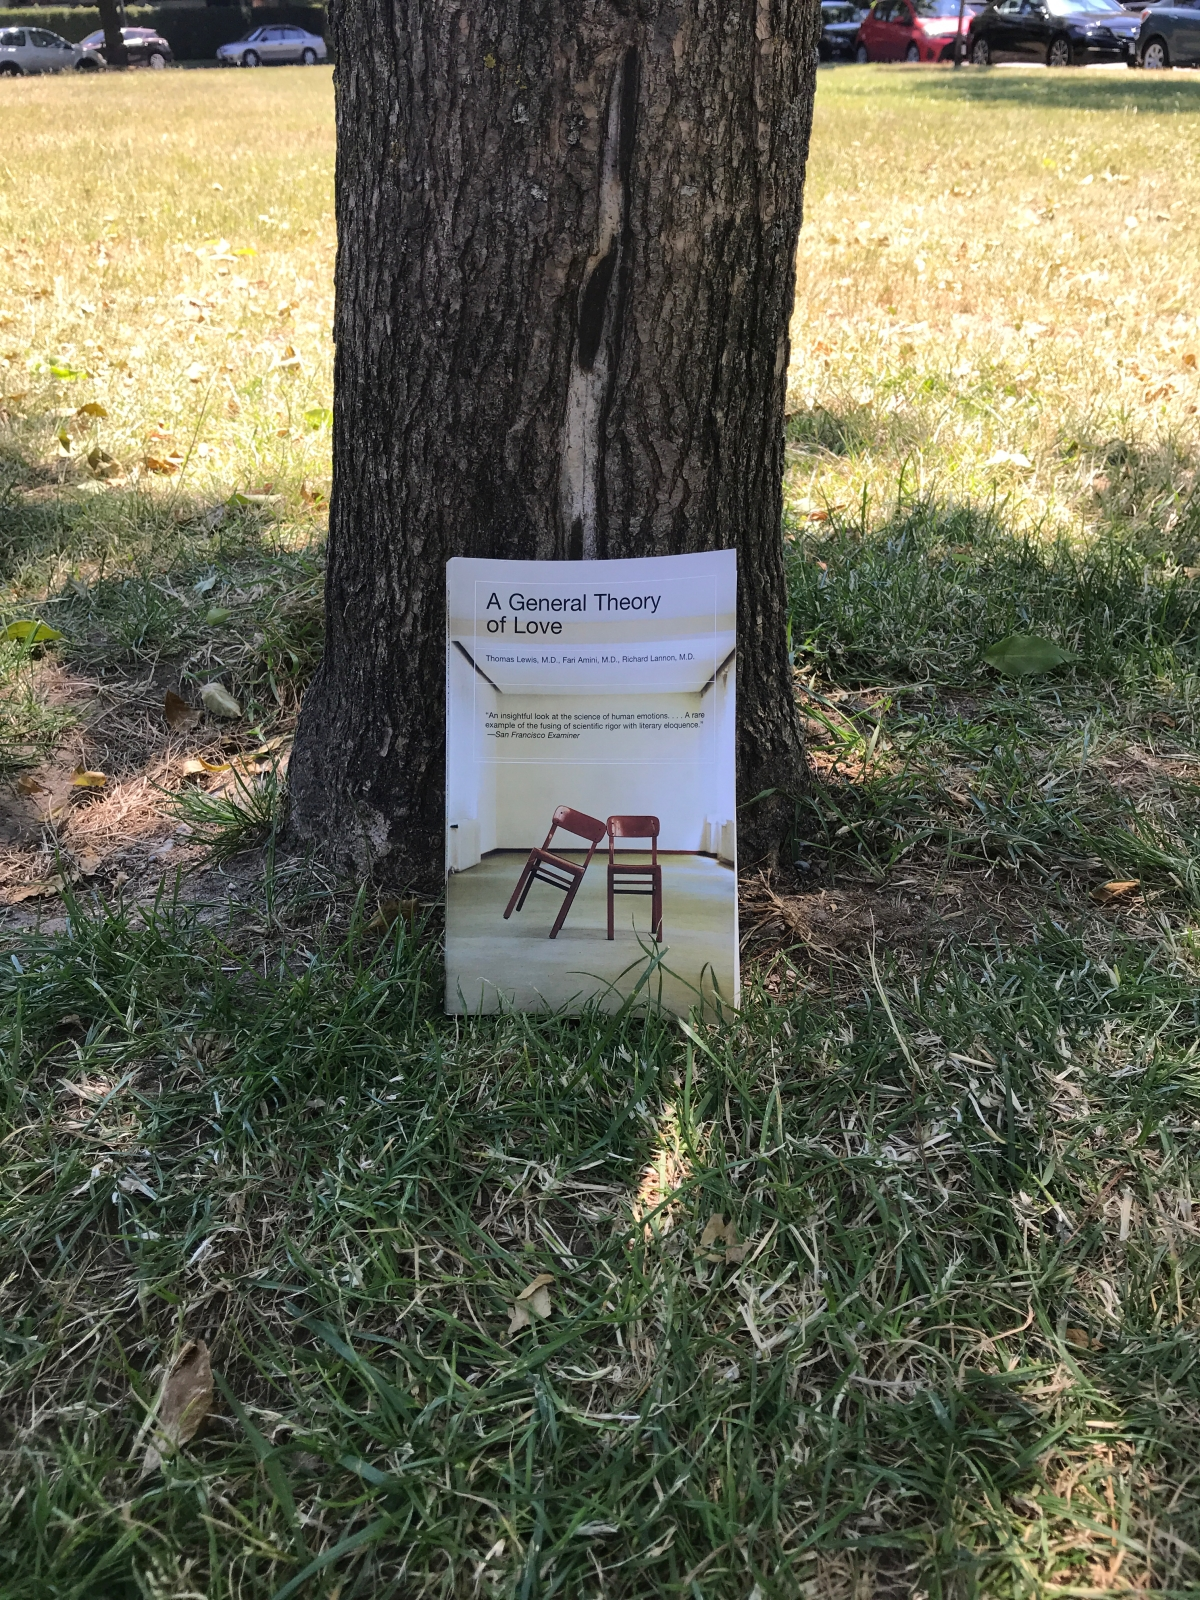 I Read a Book Under A TreeToday